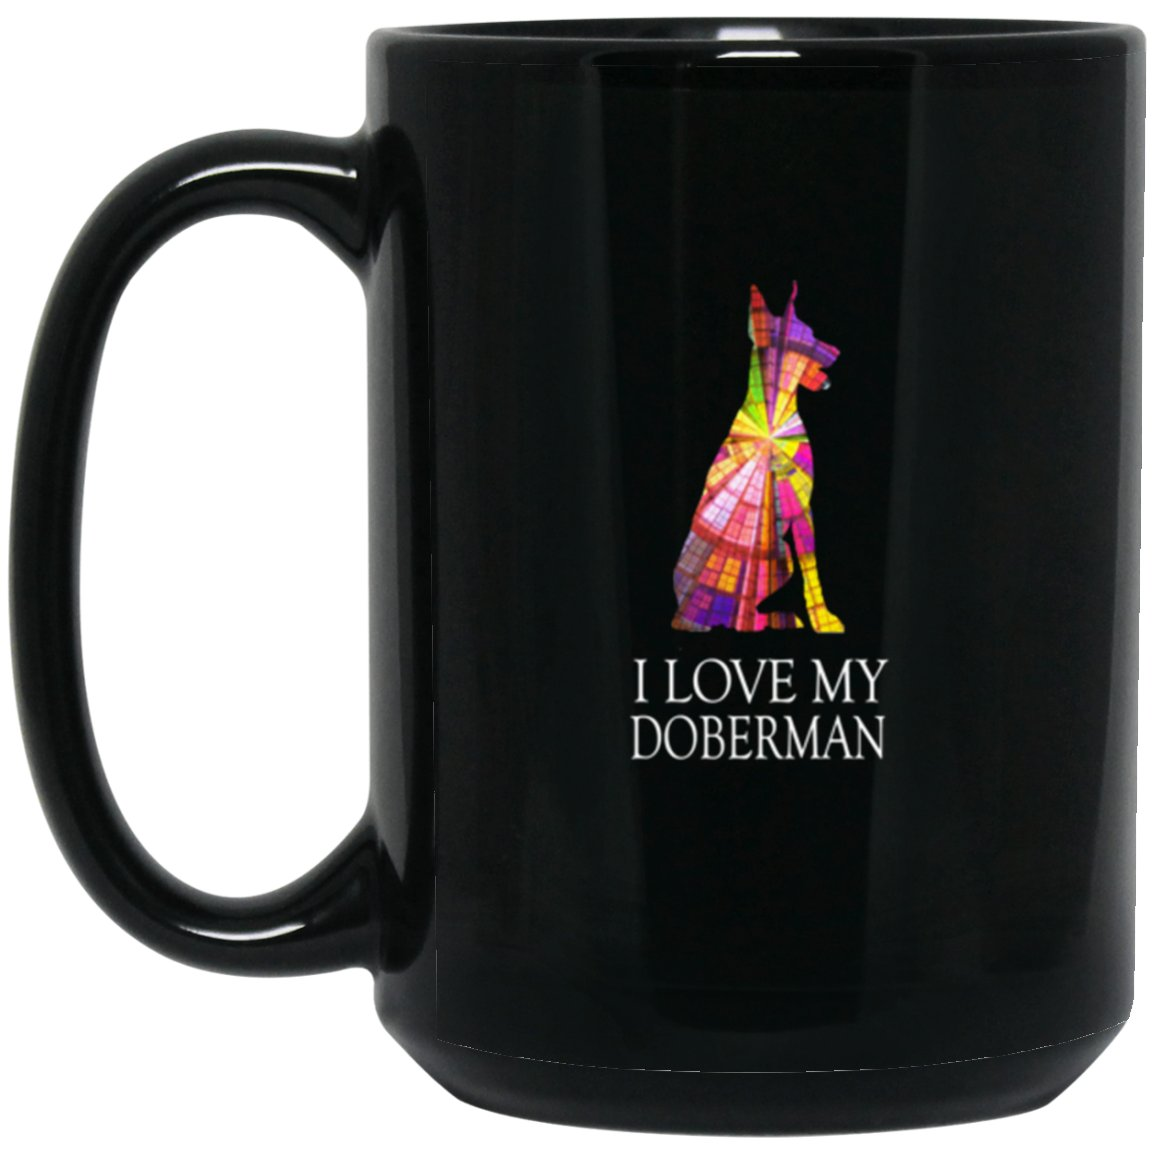 Doberman Pinscher Gifts - Love My Doberman Stained Large Black Mug